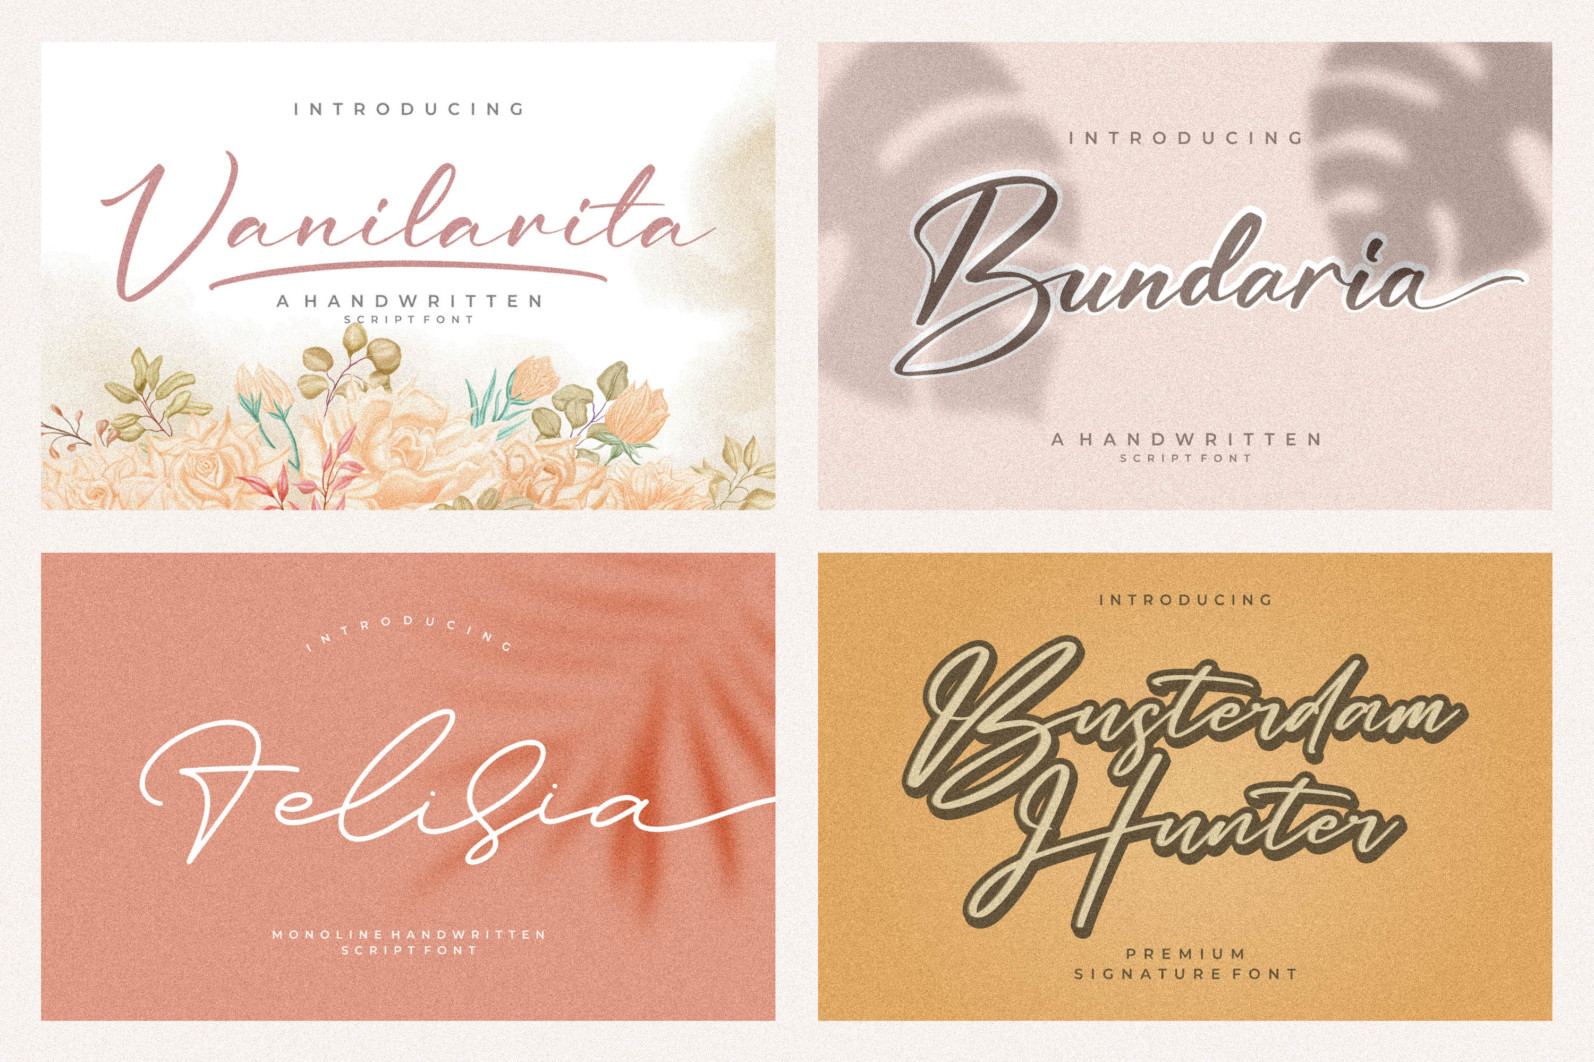 Spectacular All Collection Mega Font Bundle Handwritten - 1.png 2 scaled -